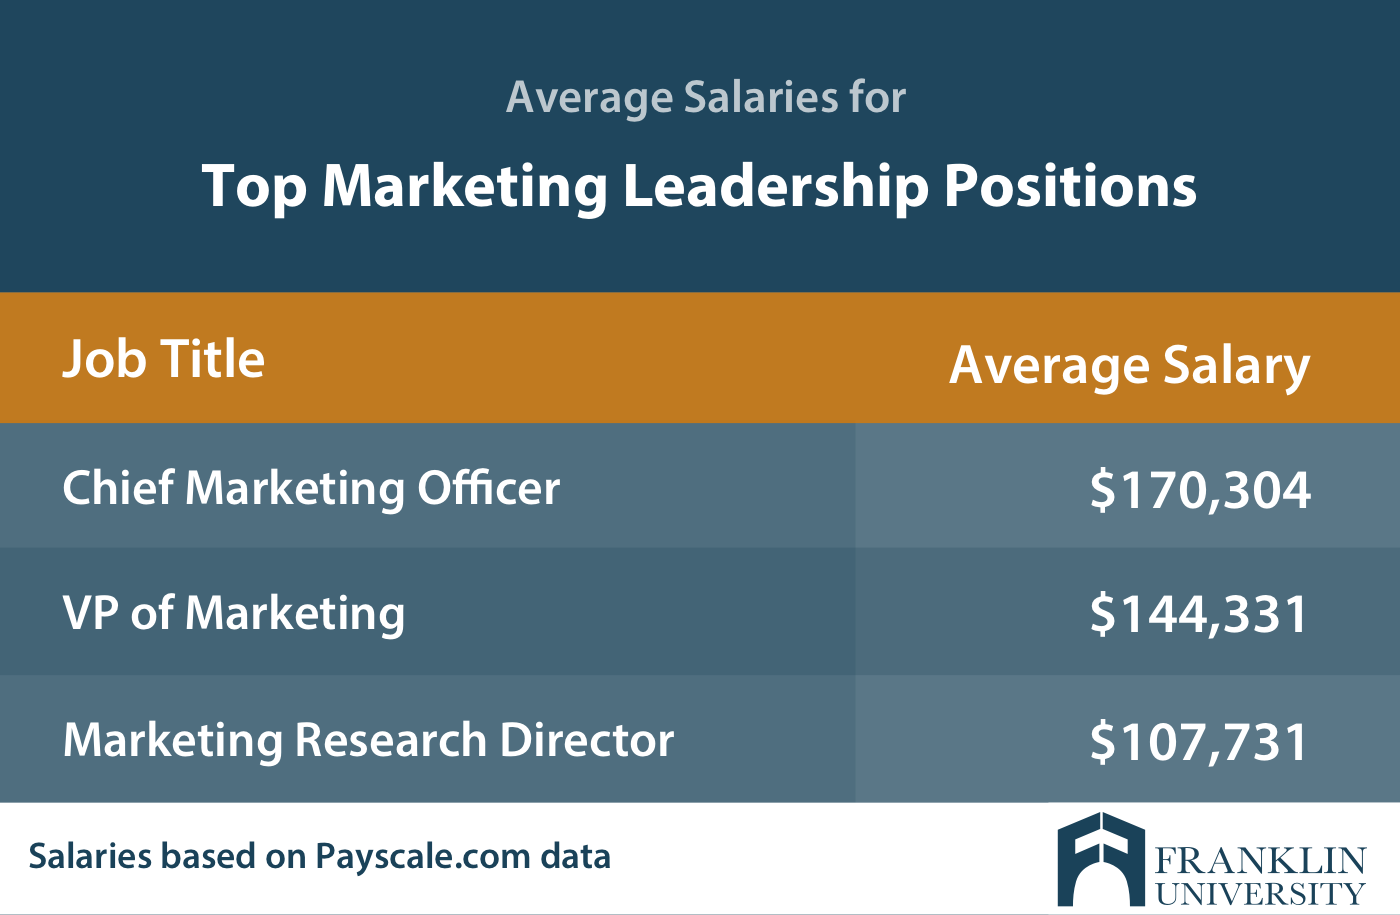 graphic describing the average salaries for top marketing leadership positions